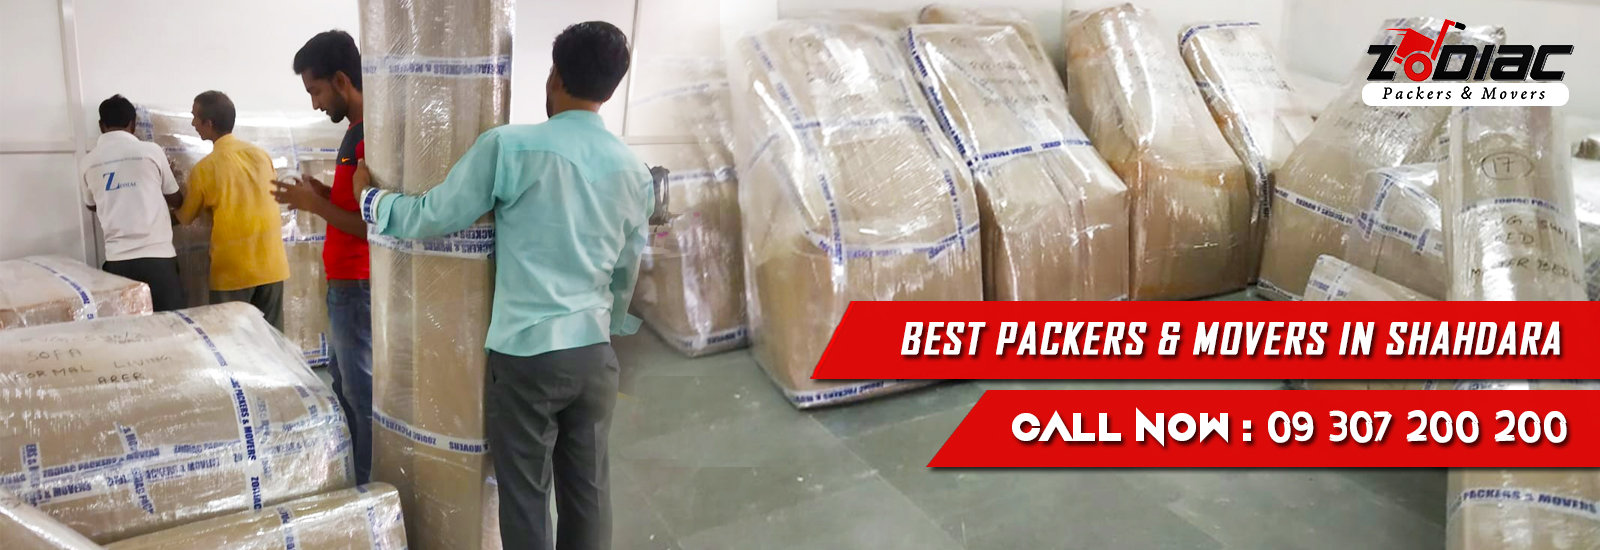 Packers and Movers in Shahdara